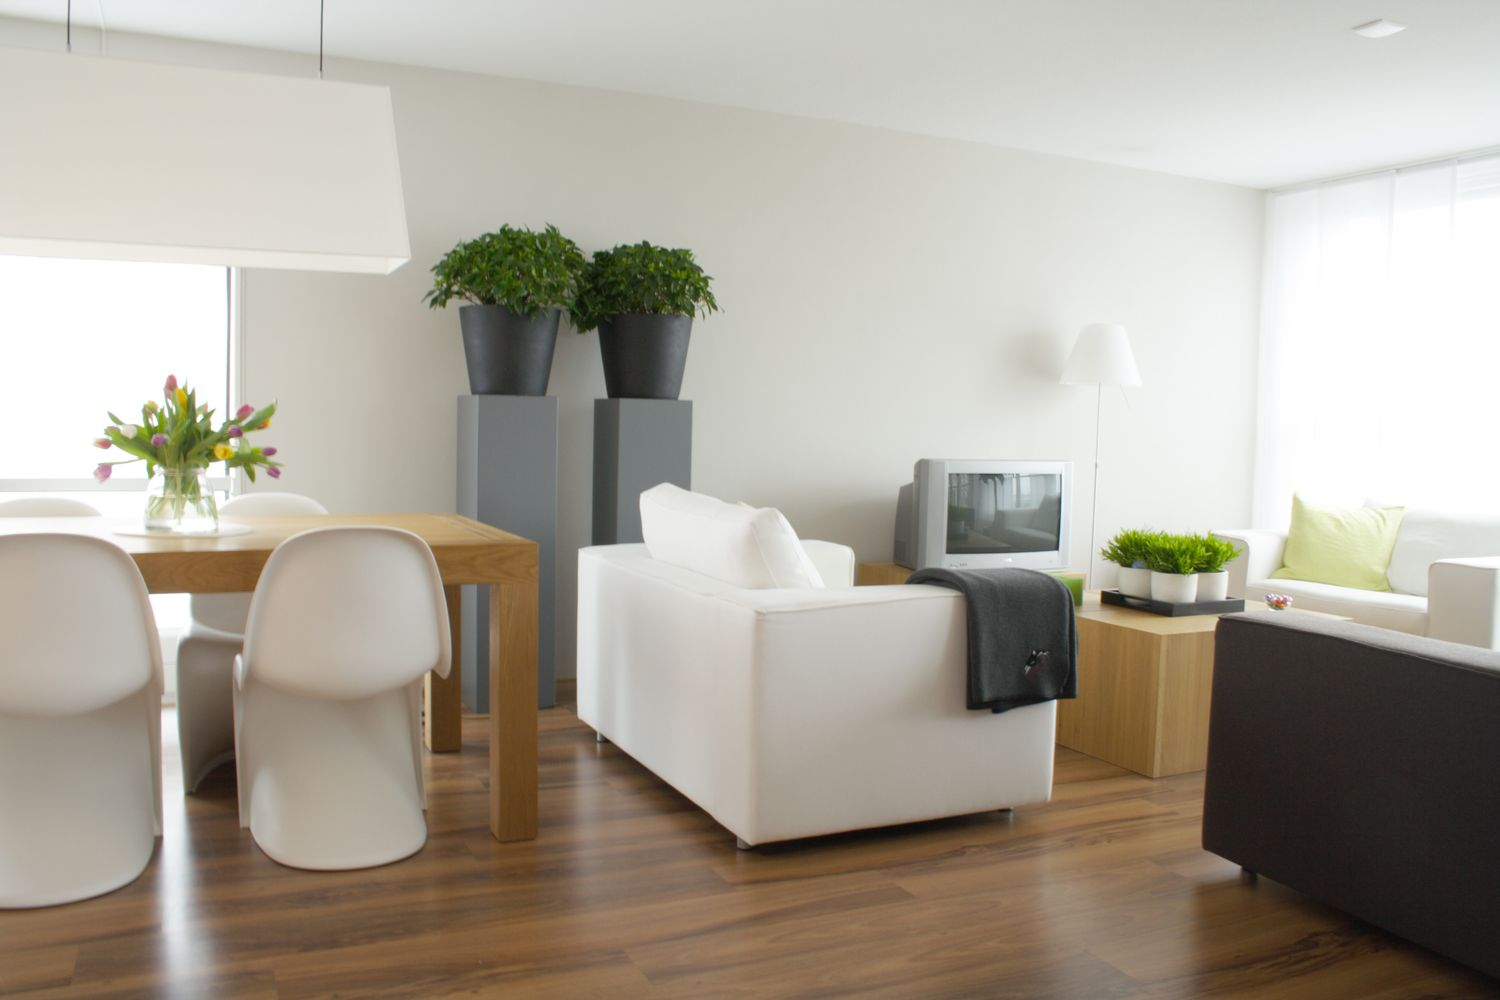 homestaging relooking